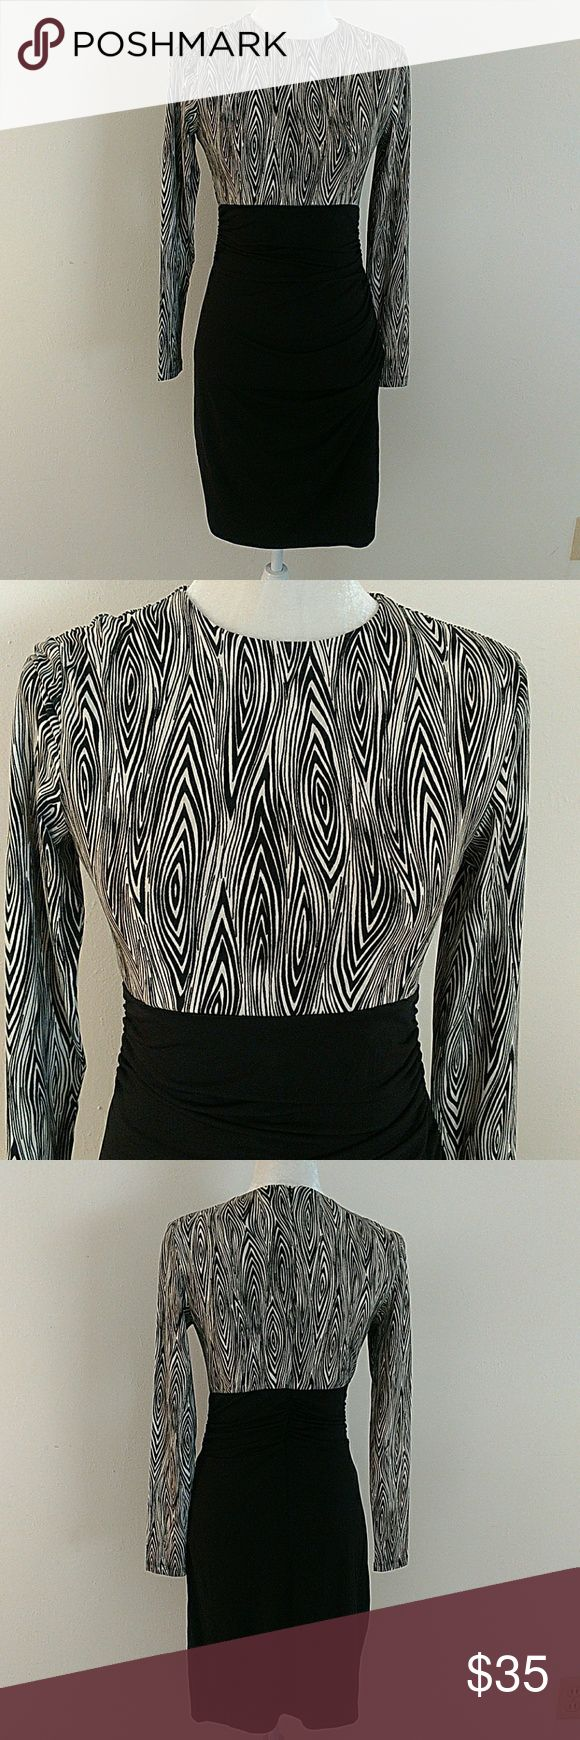 """Slinky Sexy Black & White Dress NWT. 32"""" chest, 38"""" long. Built-in black mesh slip, stretch, patterned top. Bodycon silhouette, ruched detail. Smoke-free home. Shape FX Dresses Long Sleeve"""